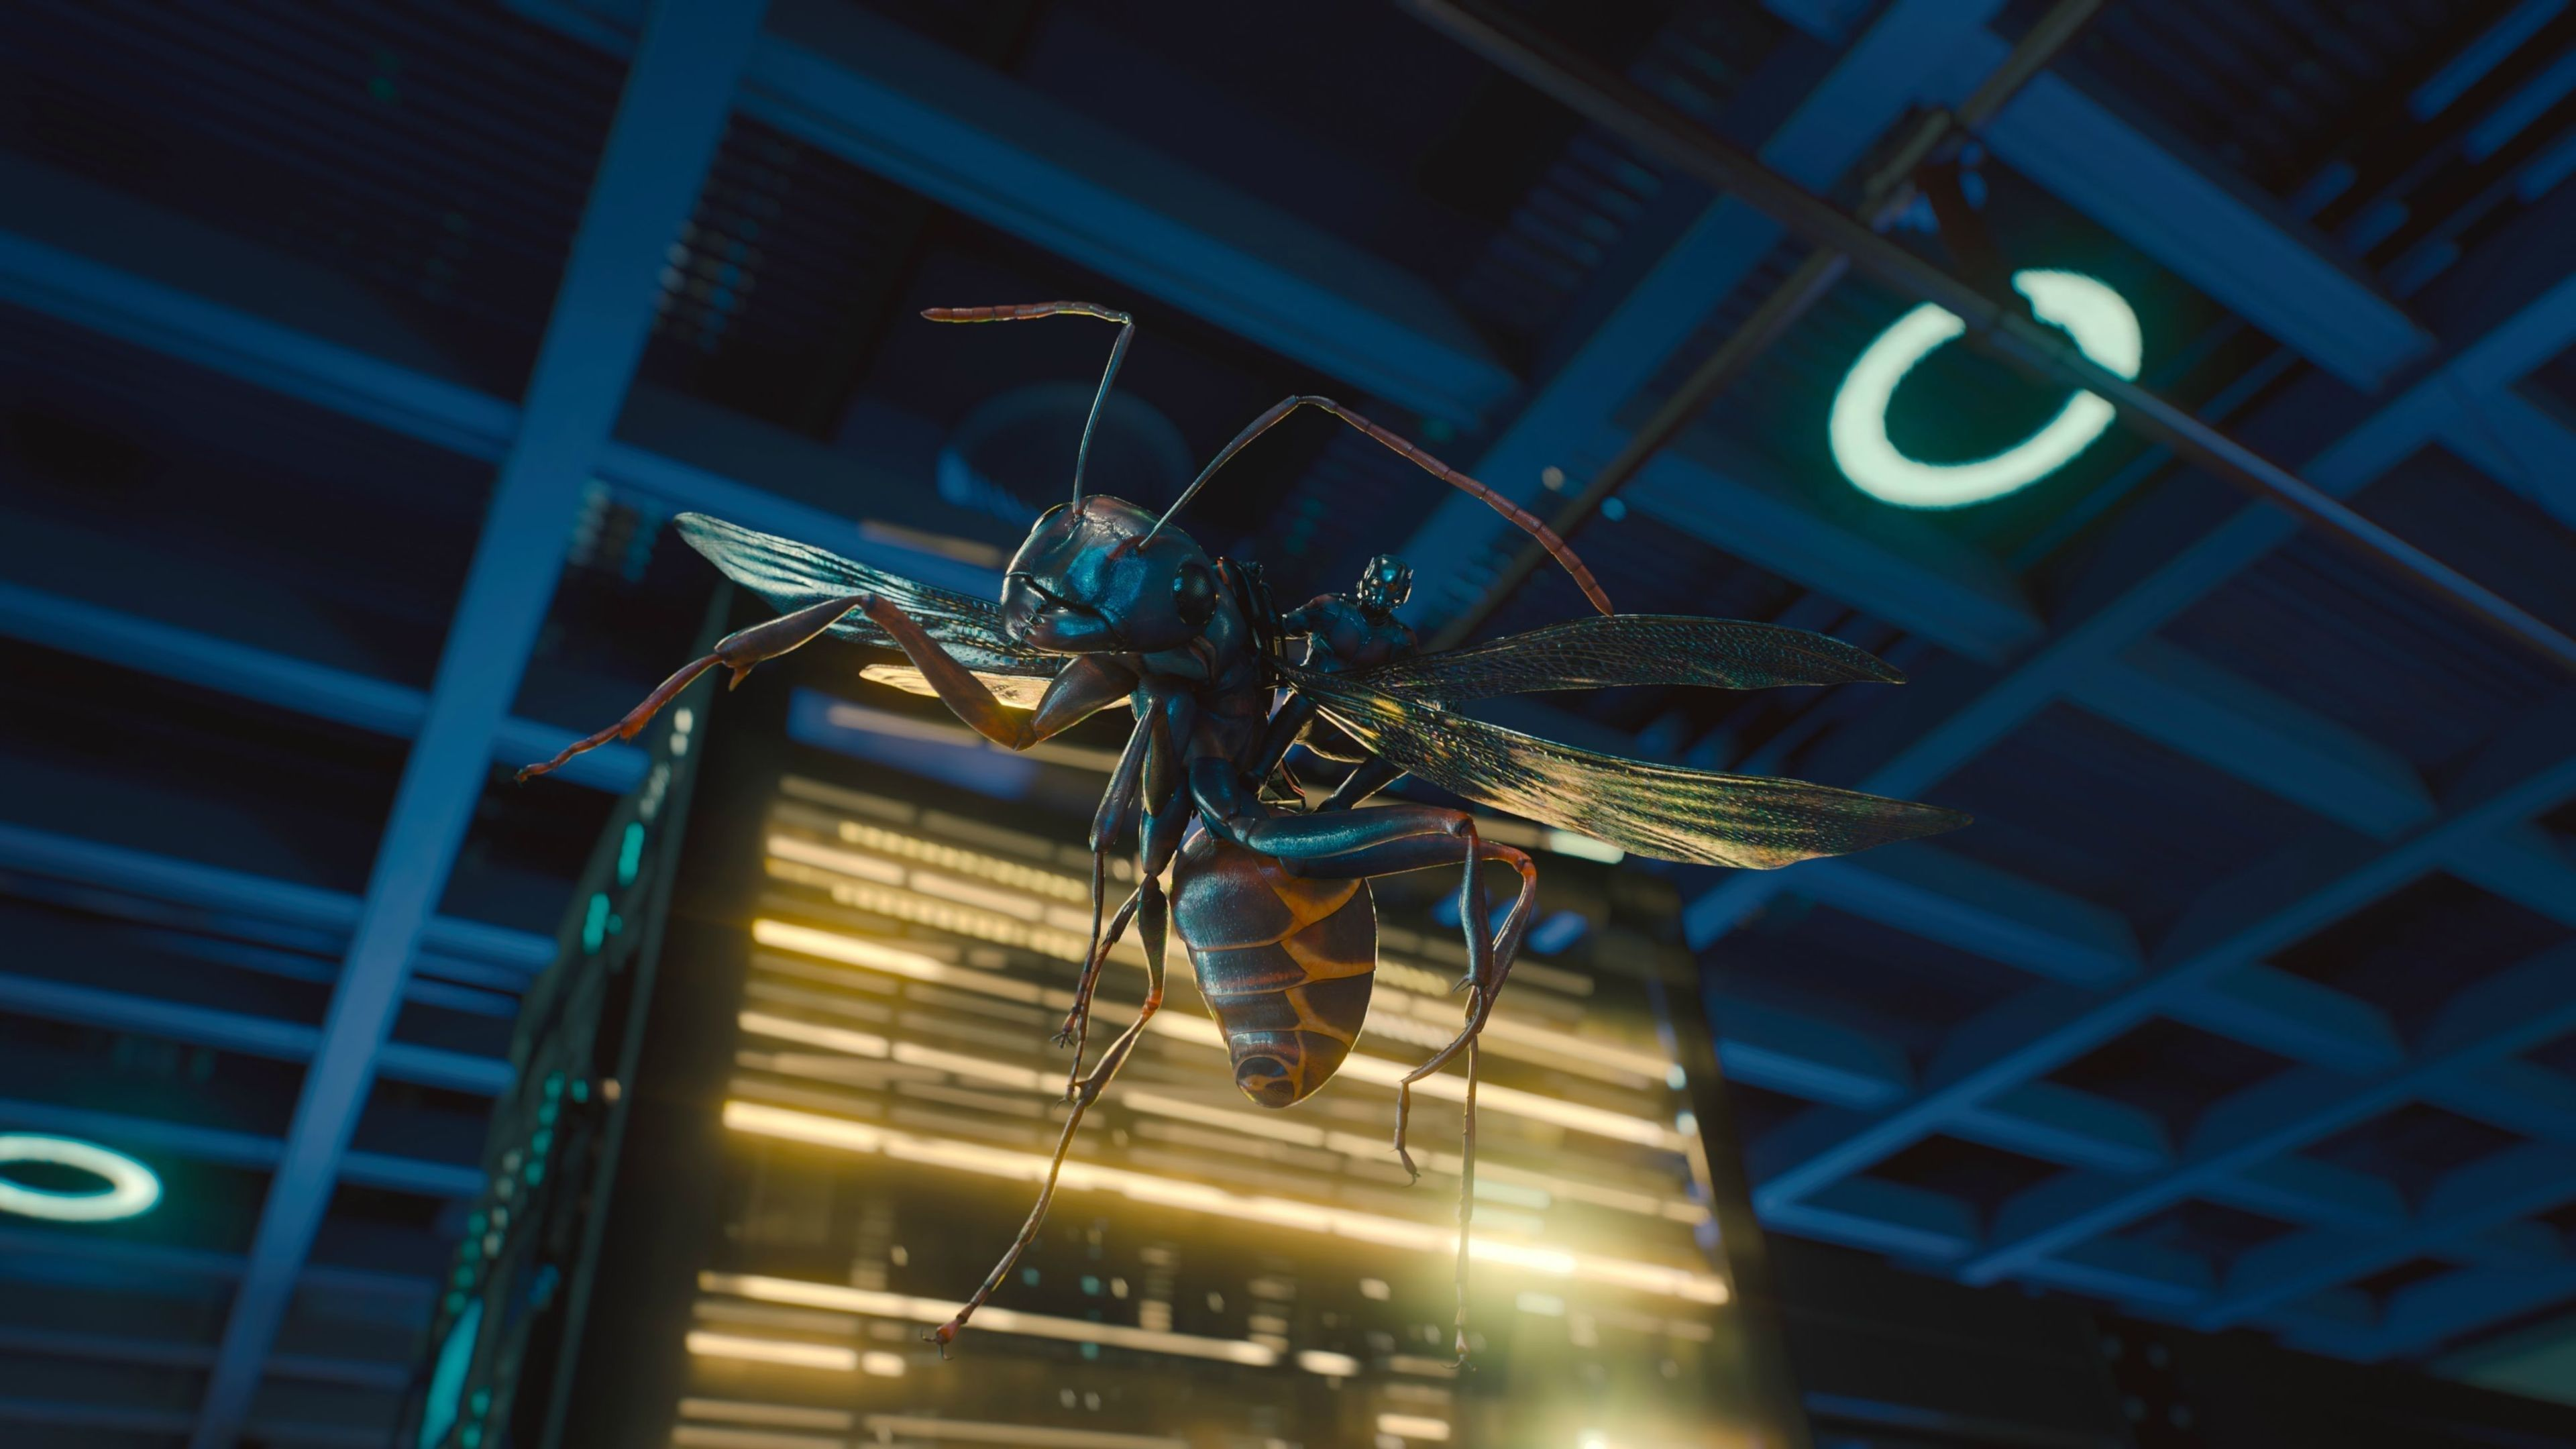 2018 ant man and the wasp movie 4k 1537645182 - 2018 Ant Man And The Wasp Movie 4K - movies wallpapers, hd-wallpapers, ant man wallpapers, ant man and the wasp wallpapers, 4k-wallpapers, 2018-movies-wallpapers